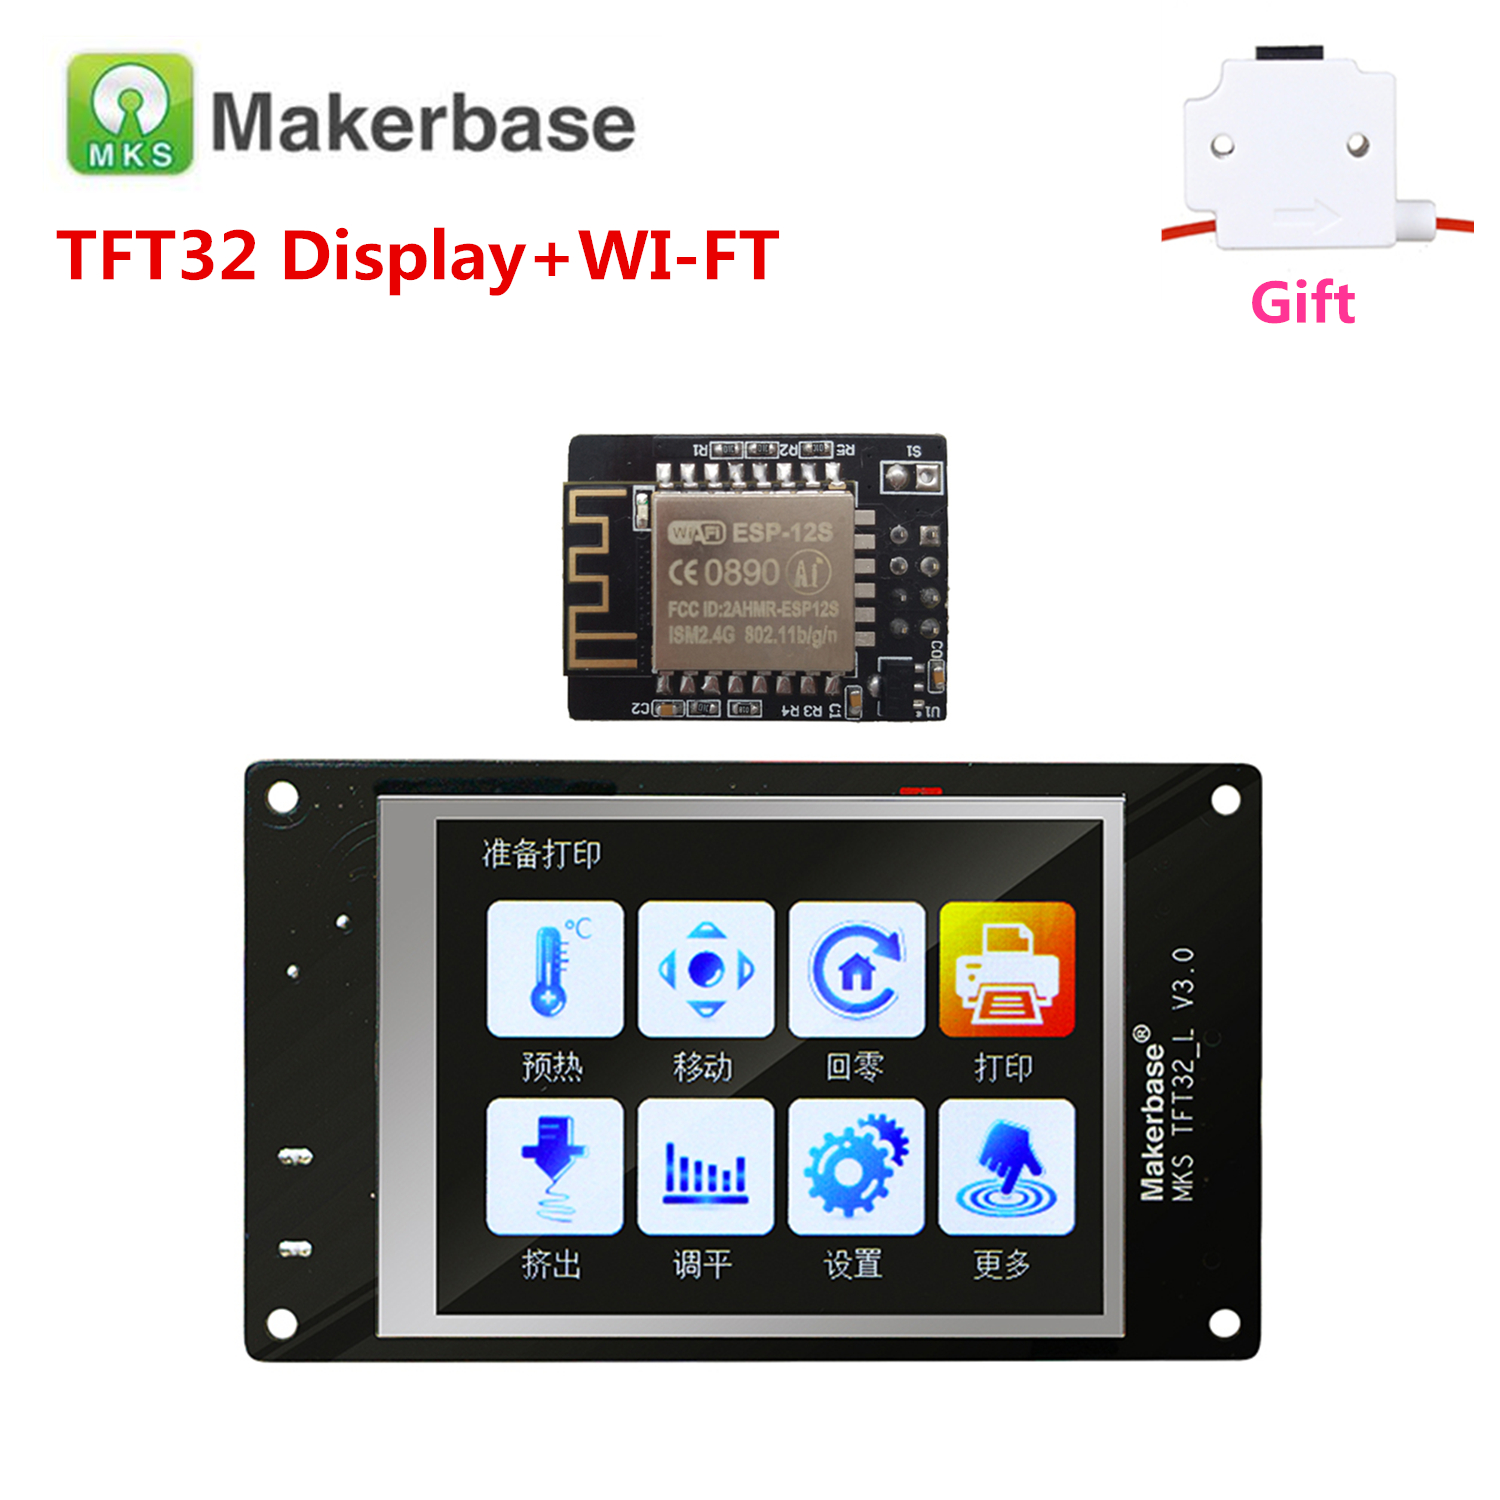 MKS TFT32 V4.0 Touch Screen + MKS WIFI Module Splash Lcds Smart Controller TFT 32 Touching TFT3.2 Display RepRap TFT Monitor